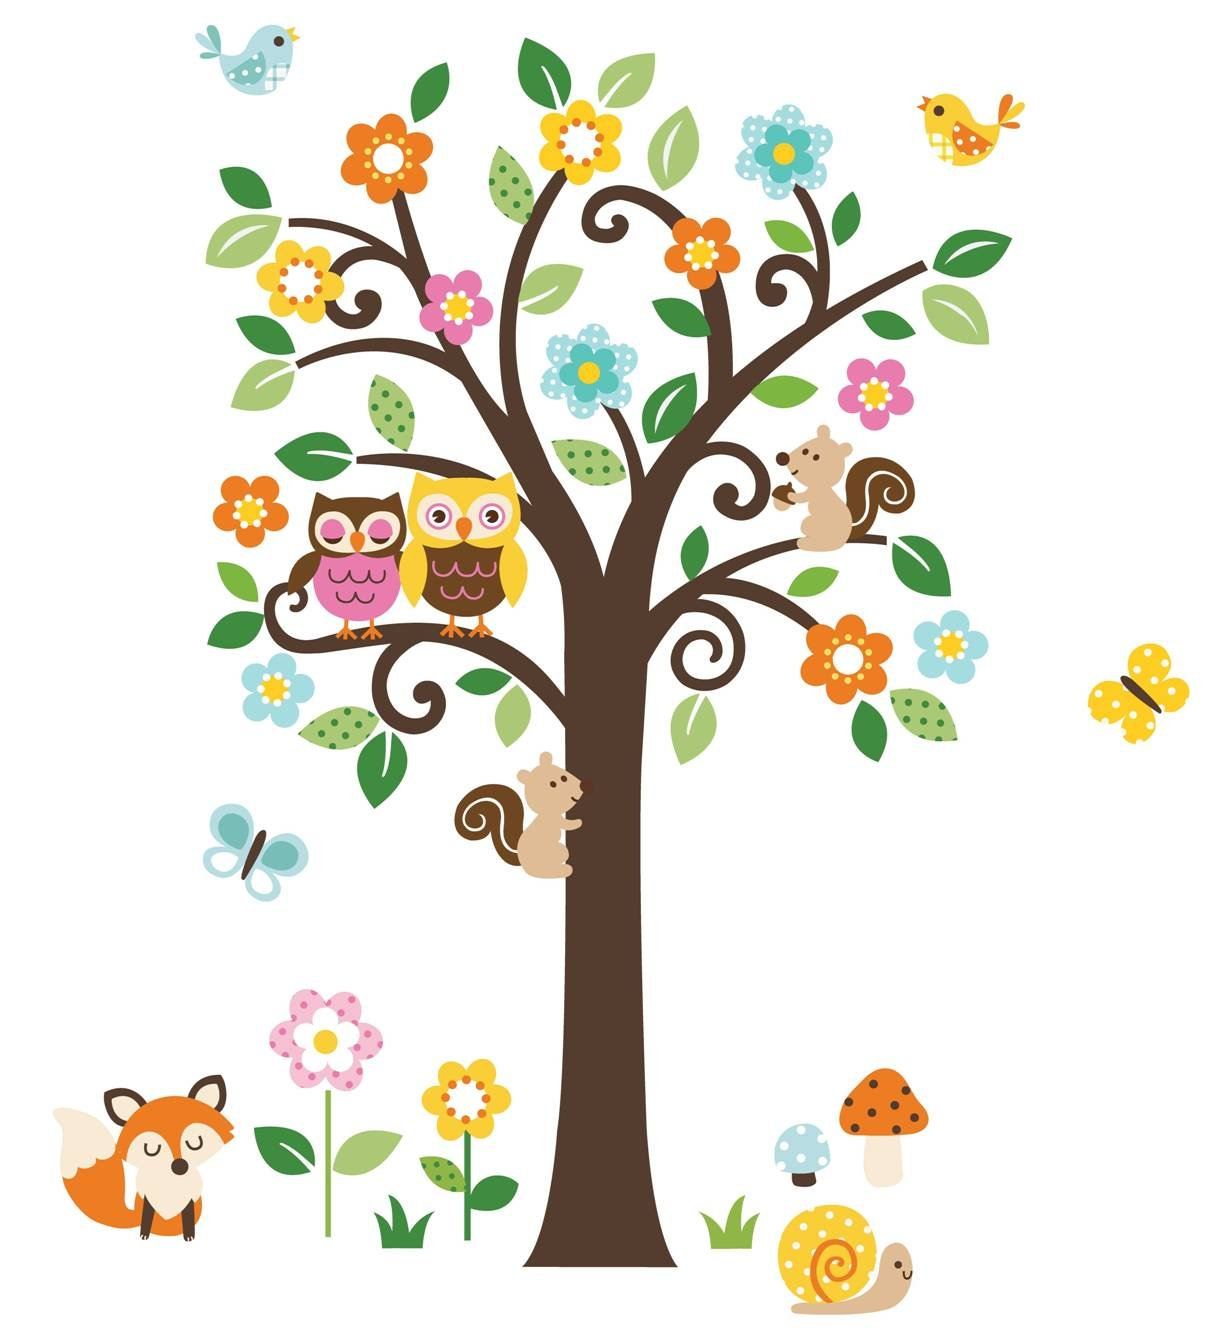 amazon com flowers tree forest animals giant baby nursery wall amazon com flowers tree forest animals giant baby nursery wall sticker decals tree assembles 55